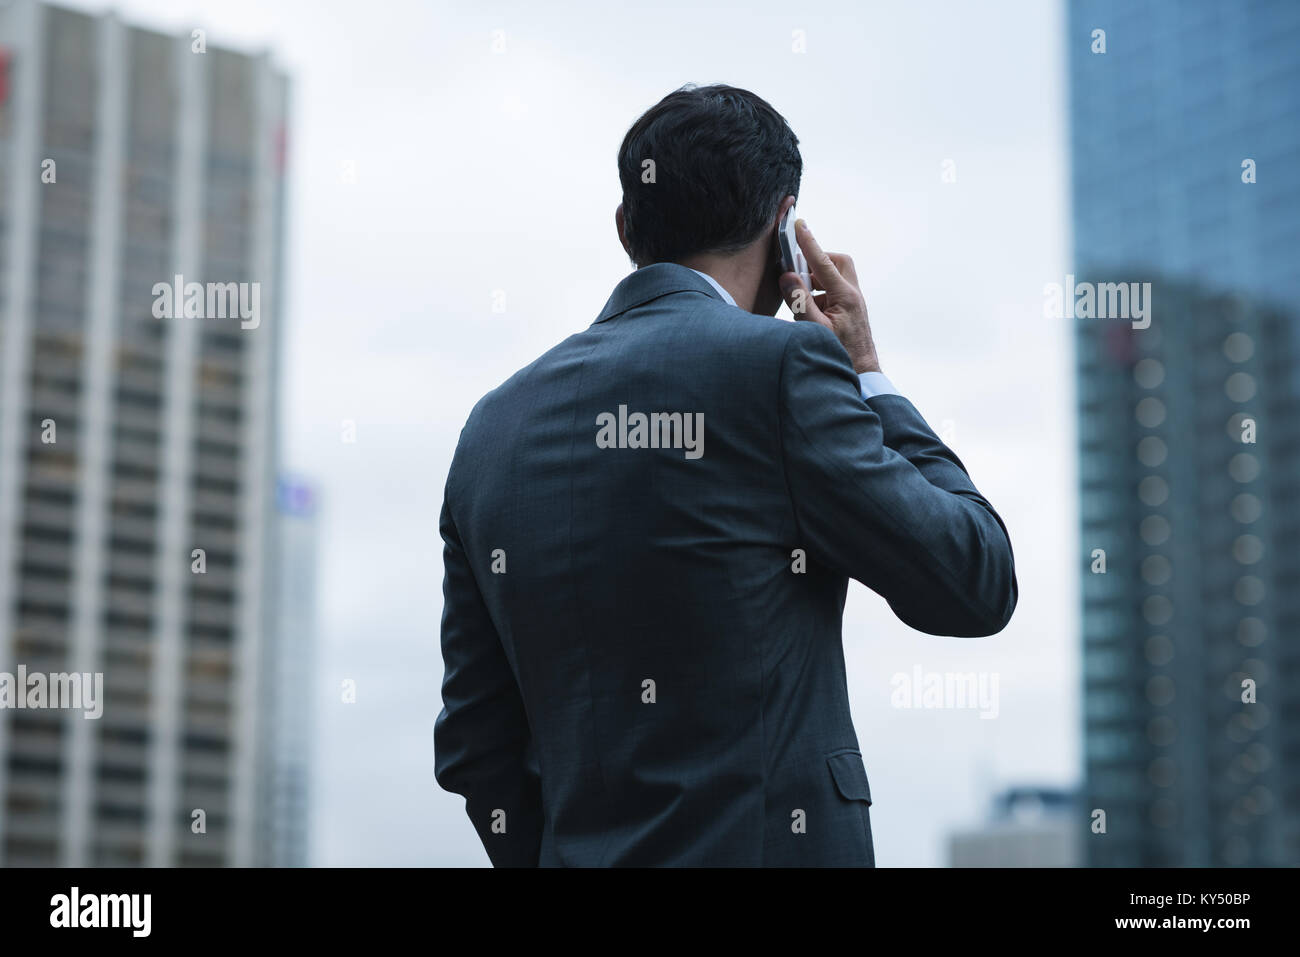 Businessman talking on mobile phone against sky scrapers - Stock Image